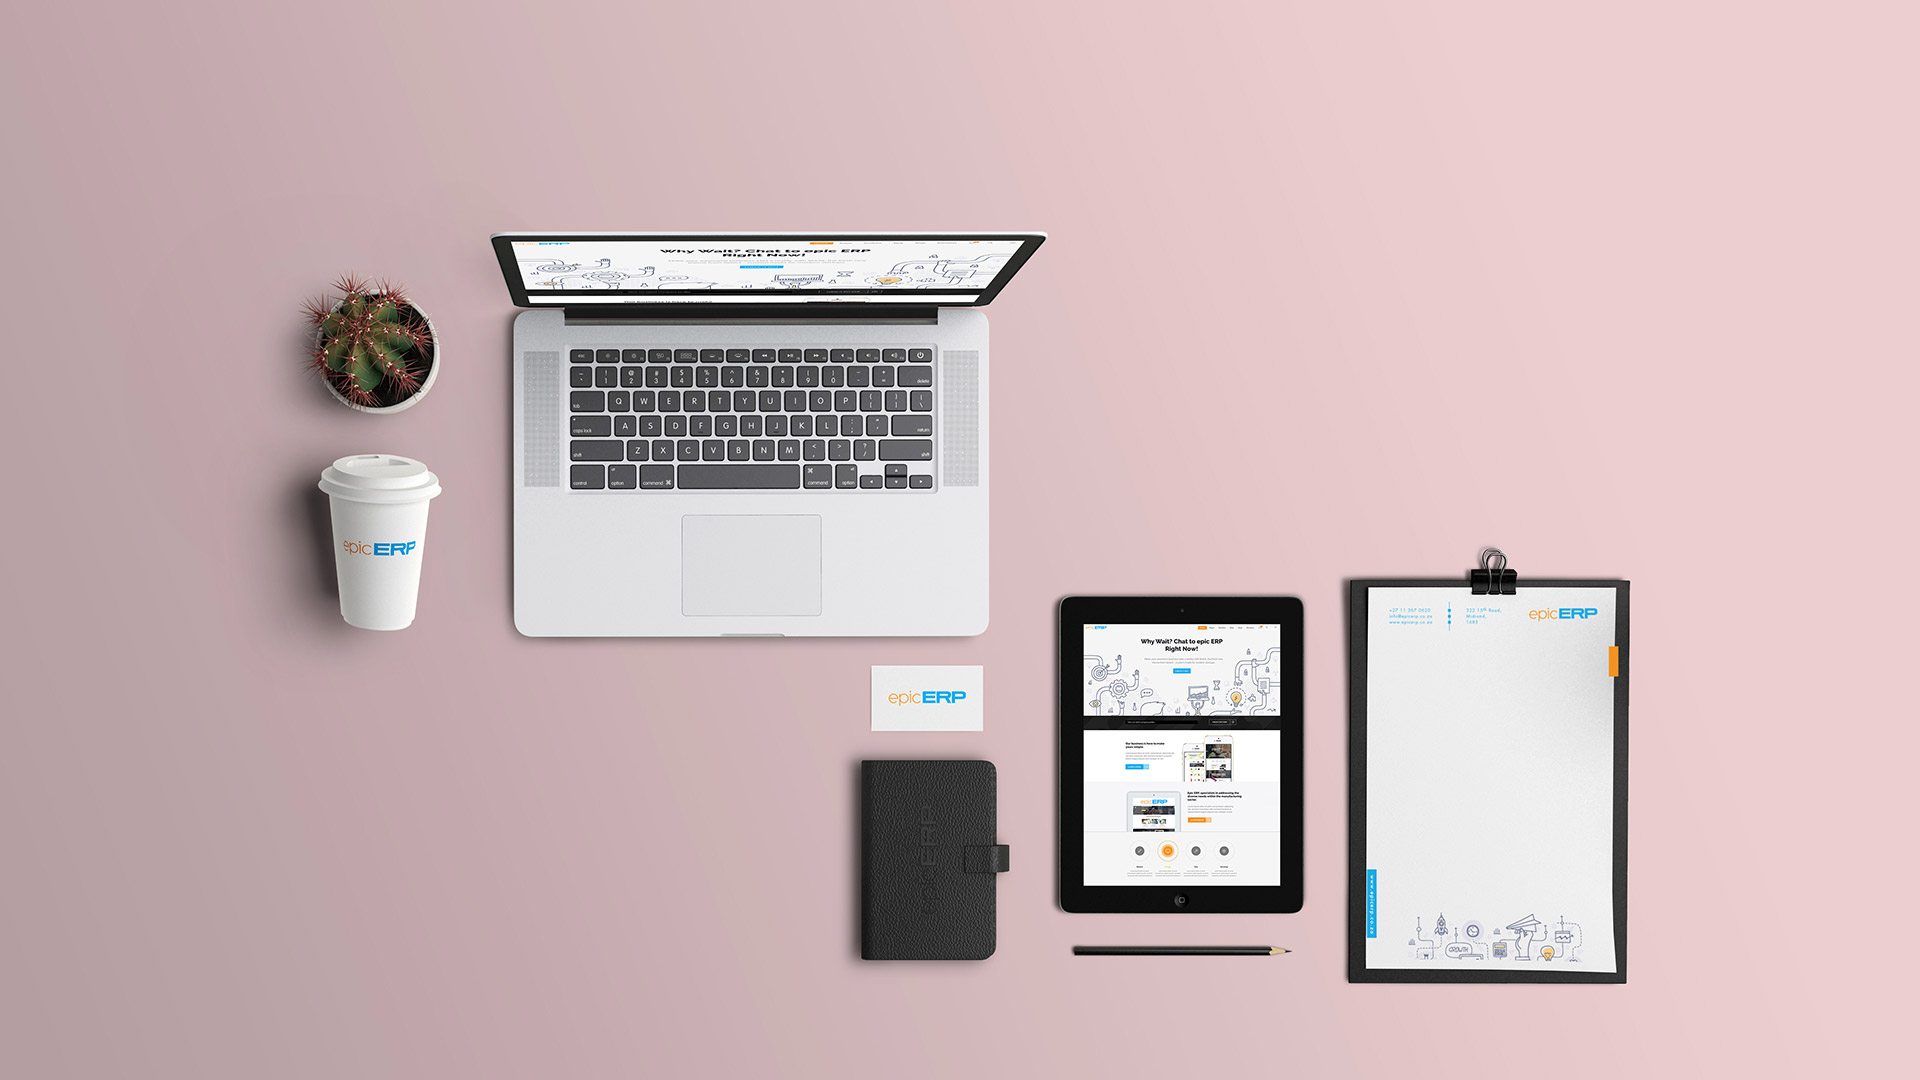 A table with laptop, book, tablet, and other stationary branded by black snow group